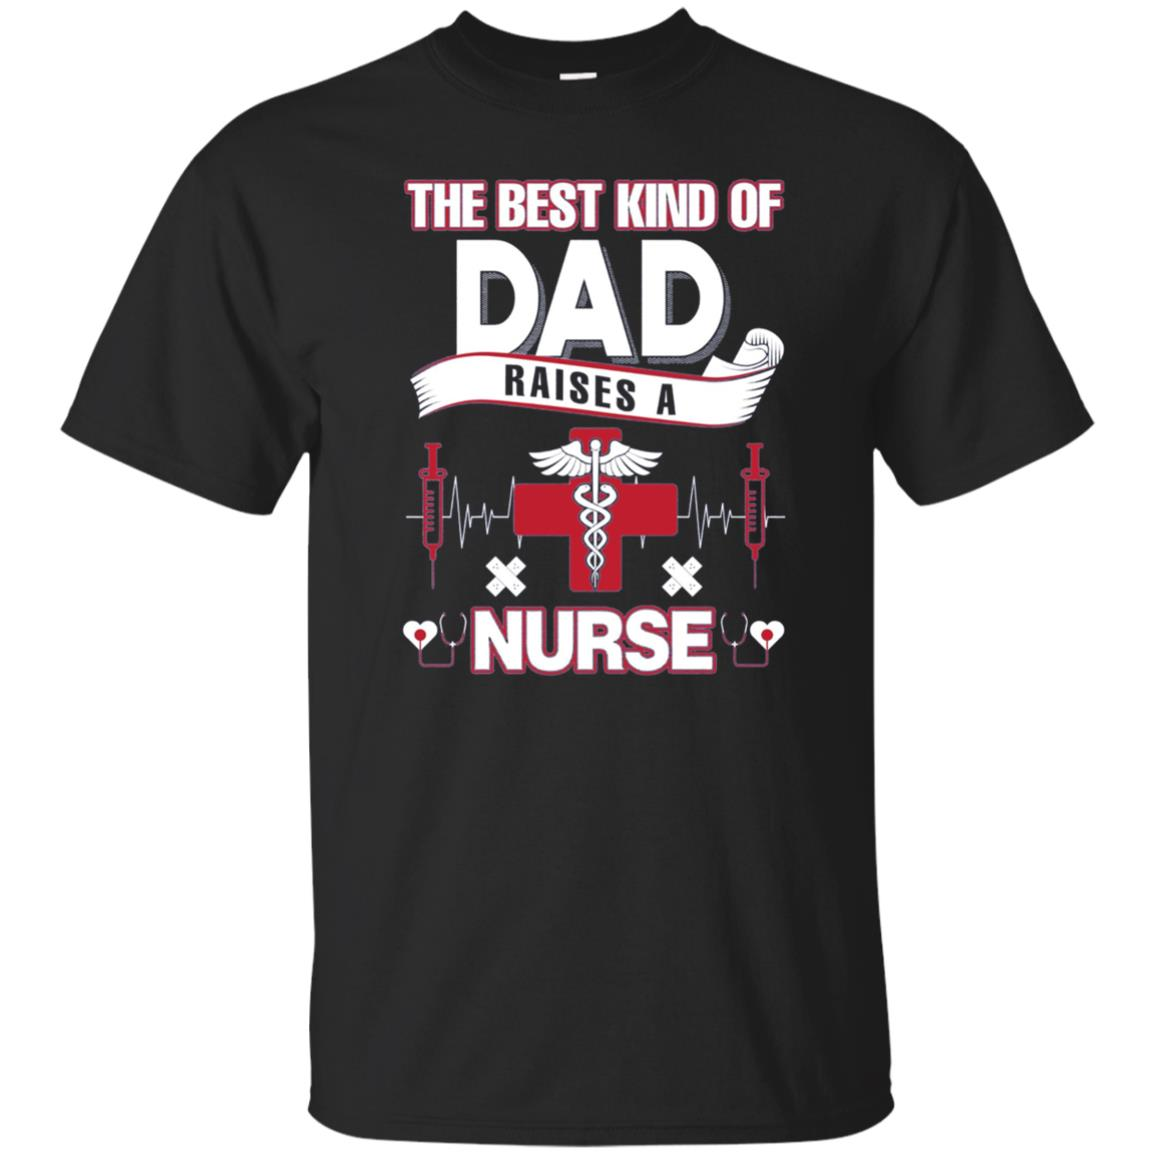 Best Kind Of Dad Raise A Nurse Shirt For Men Women